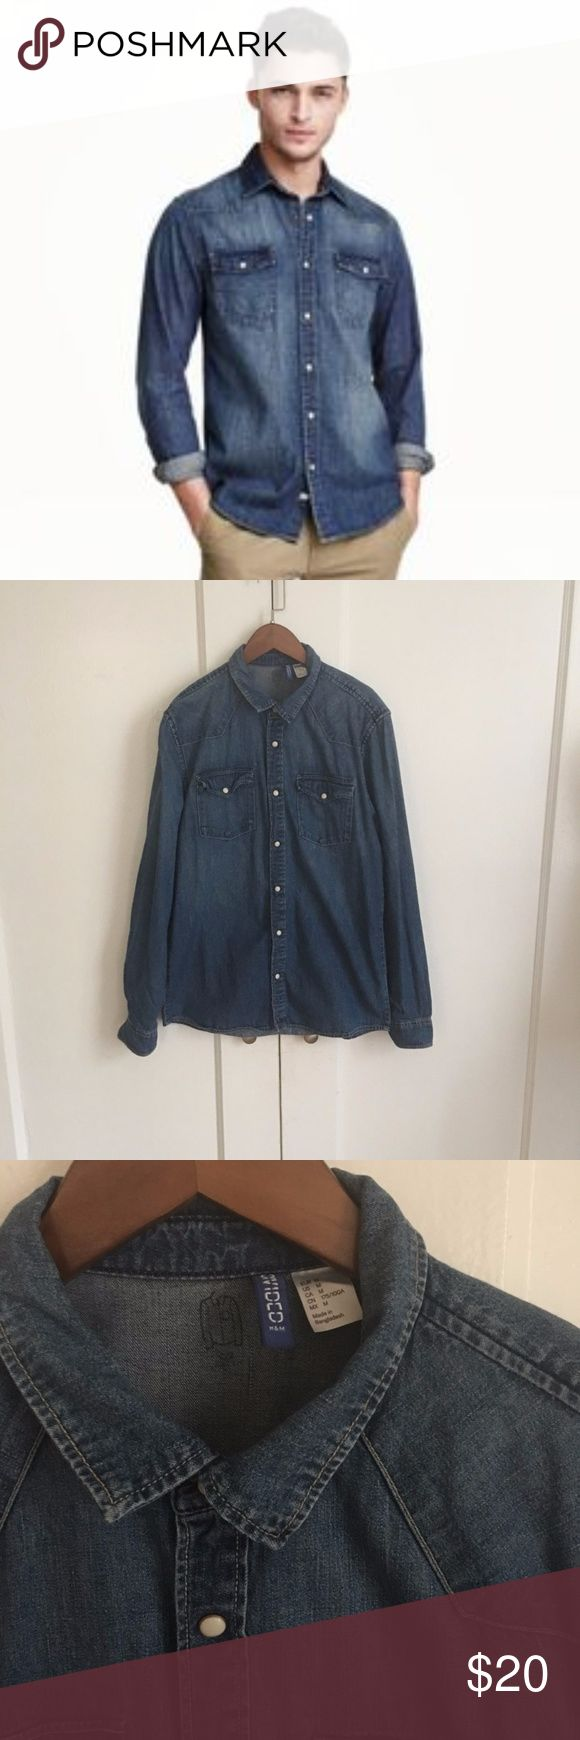 """Divided by H&M snap front denim button down shirt Divided by H&M  snap front denim button down shirt  in excellent conditions  sz m chest 19.5""""  length 25.5  long sleeves  pm704 h&m Shirts Casual Button Down Shirts"""